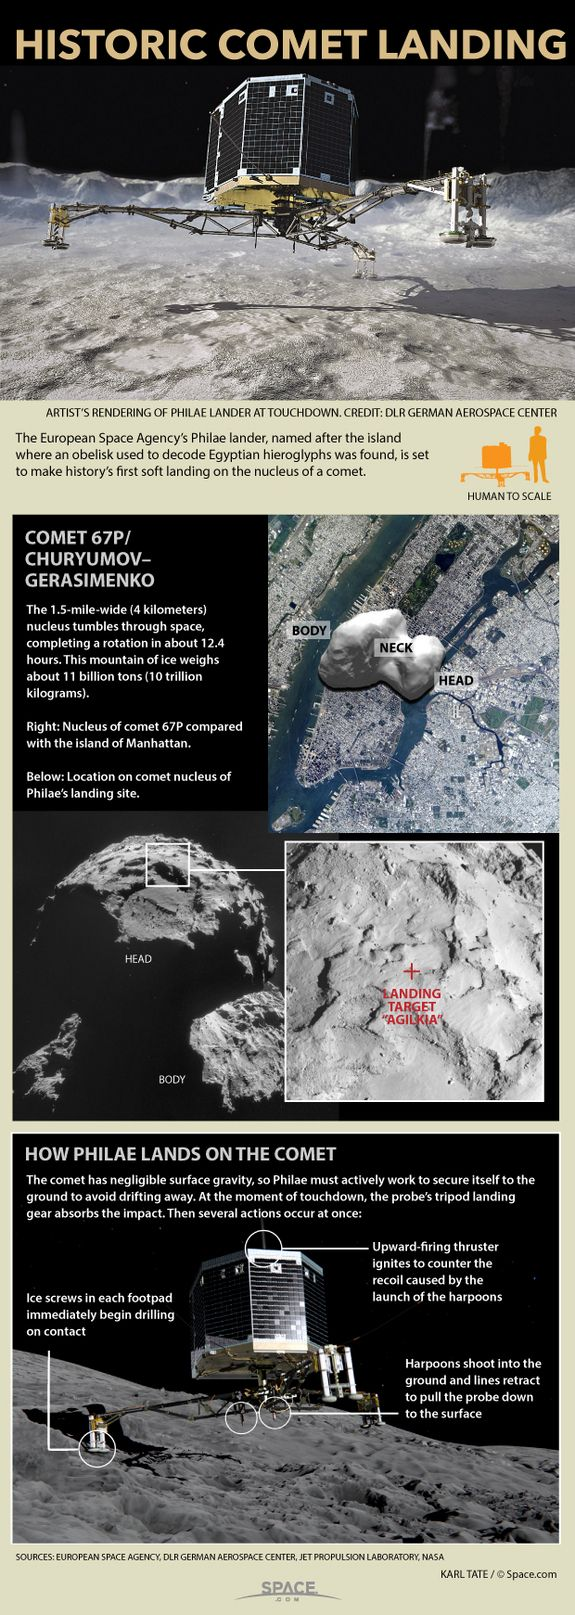 Rosetta Comet Landing Explained In One Simple Infographic - Diagrams show how lander touches down on a comet nucleus.  http://www.huffingtonpost.co.uk/2014/11/12/rosetta-comet-infographic_n_6143612.html